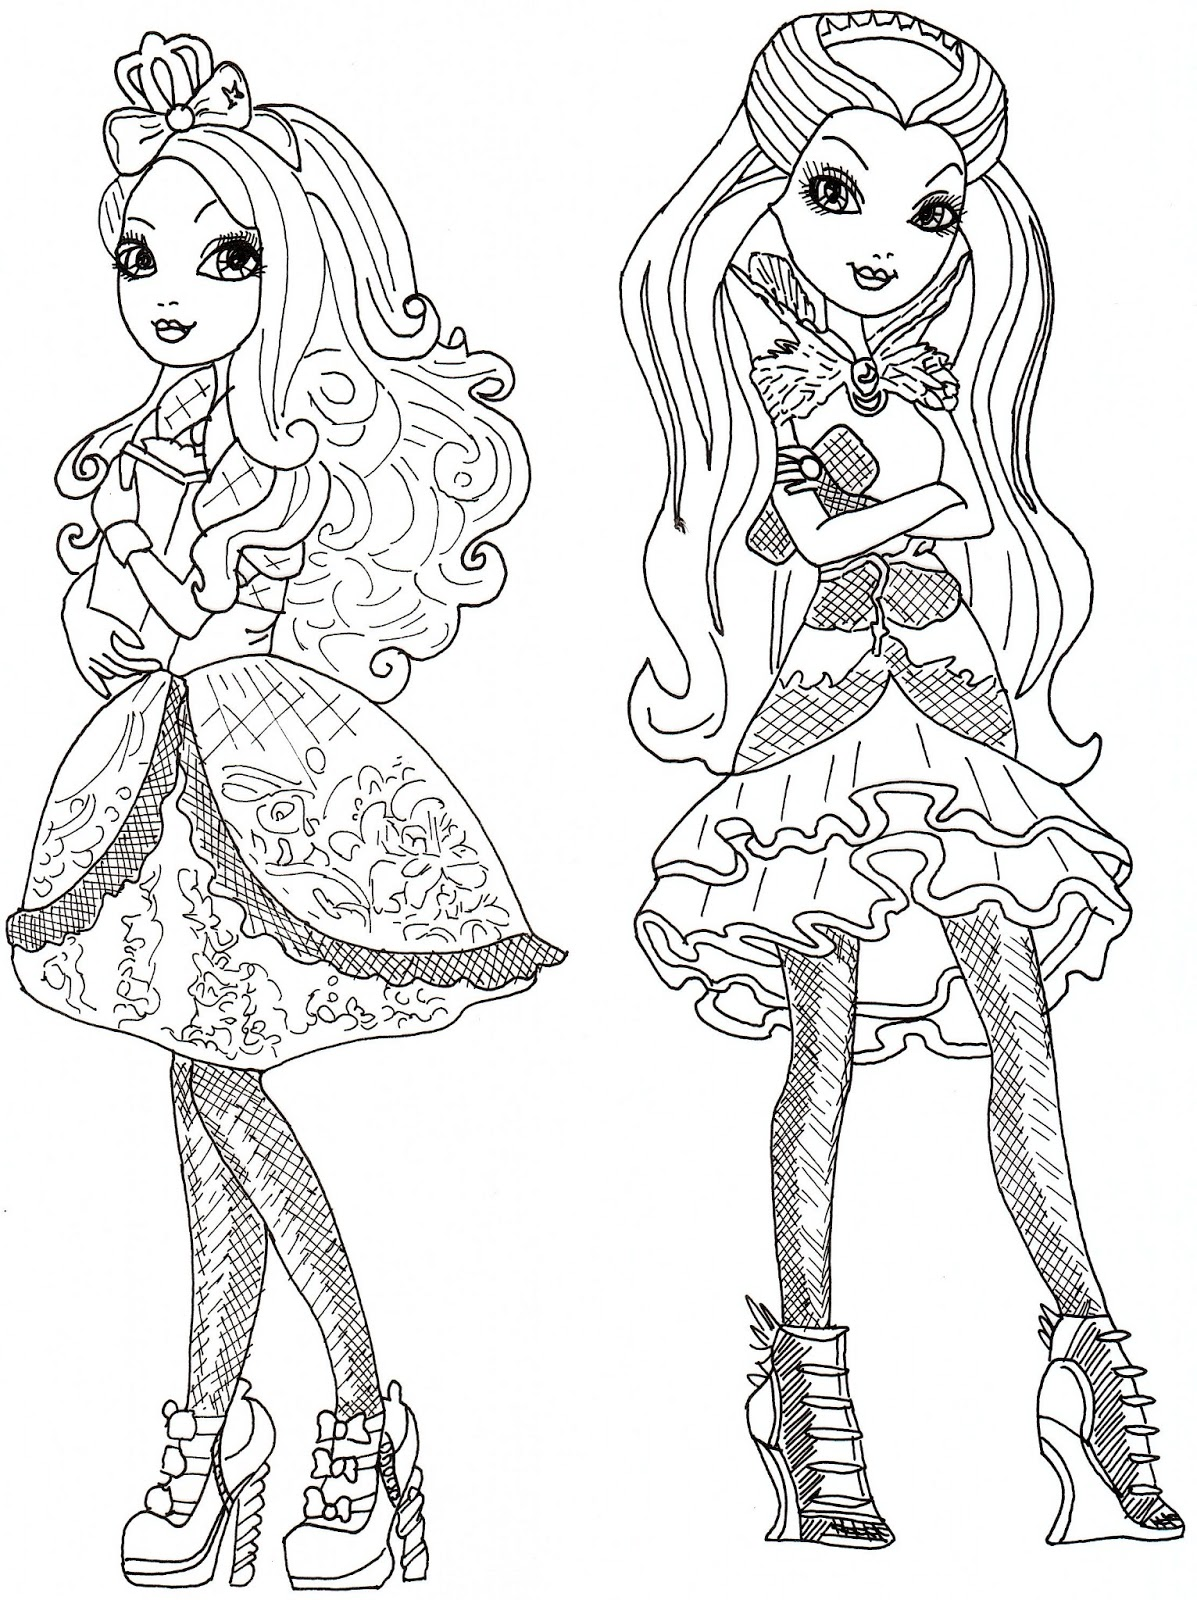 Free printable ever after high coloring pages june 2013 for Raven coloring pages